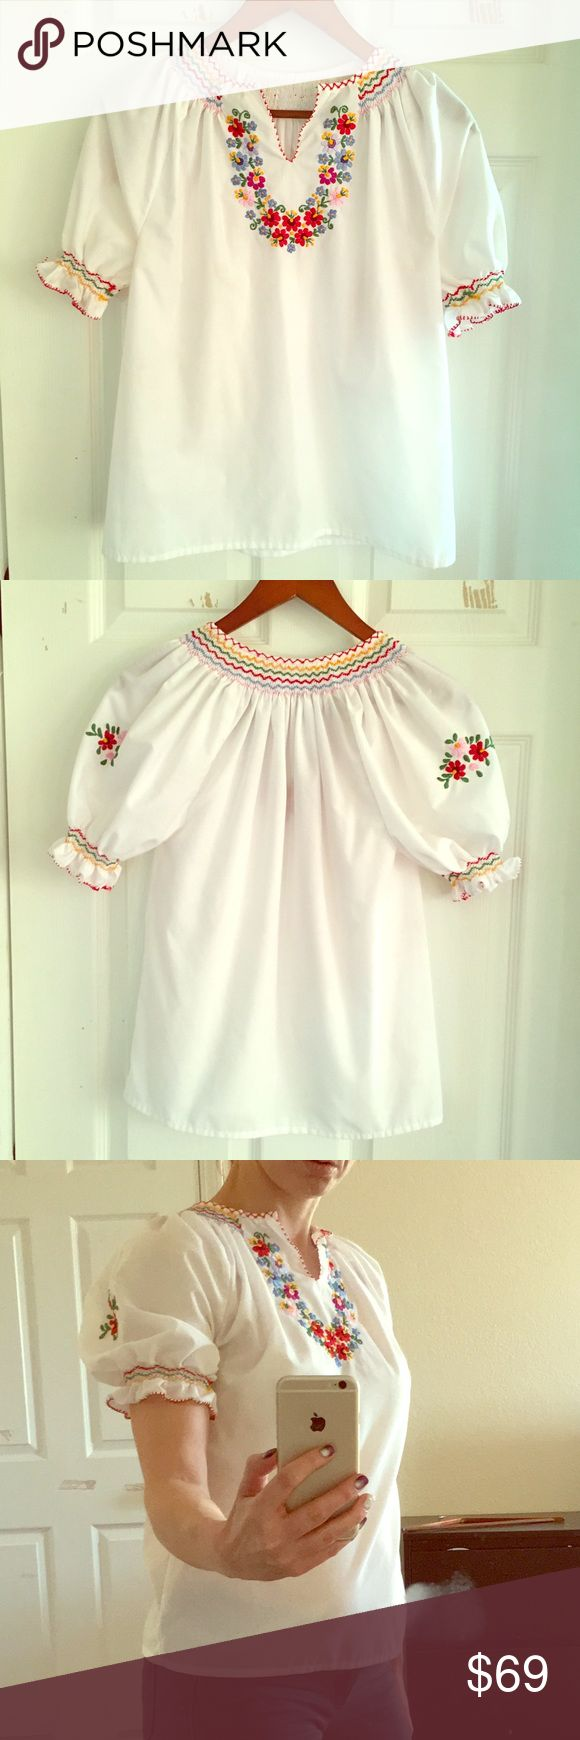 Hungarian hand-embroidered  folk wear shirt Authentic, traditional, hand-embroidered Hungarian folk wear shirt from Hungary. The lady's name who made it is printed inside. Lightly worn, like new, no signs of wear! Beautiful, one-of a kind piece. There's no indication of size but see how it fits on a size XS on the photo. It's definitely XS, not supposed to be snug. Tops Blouses